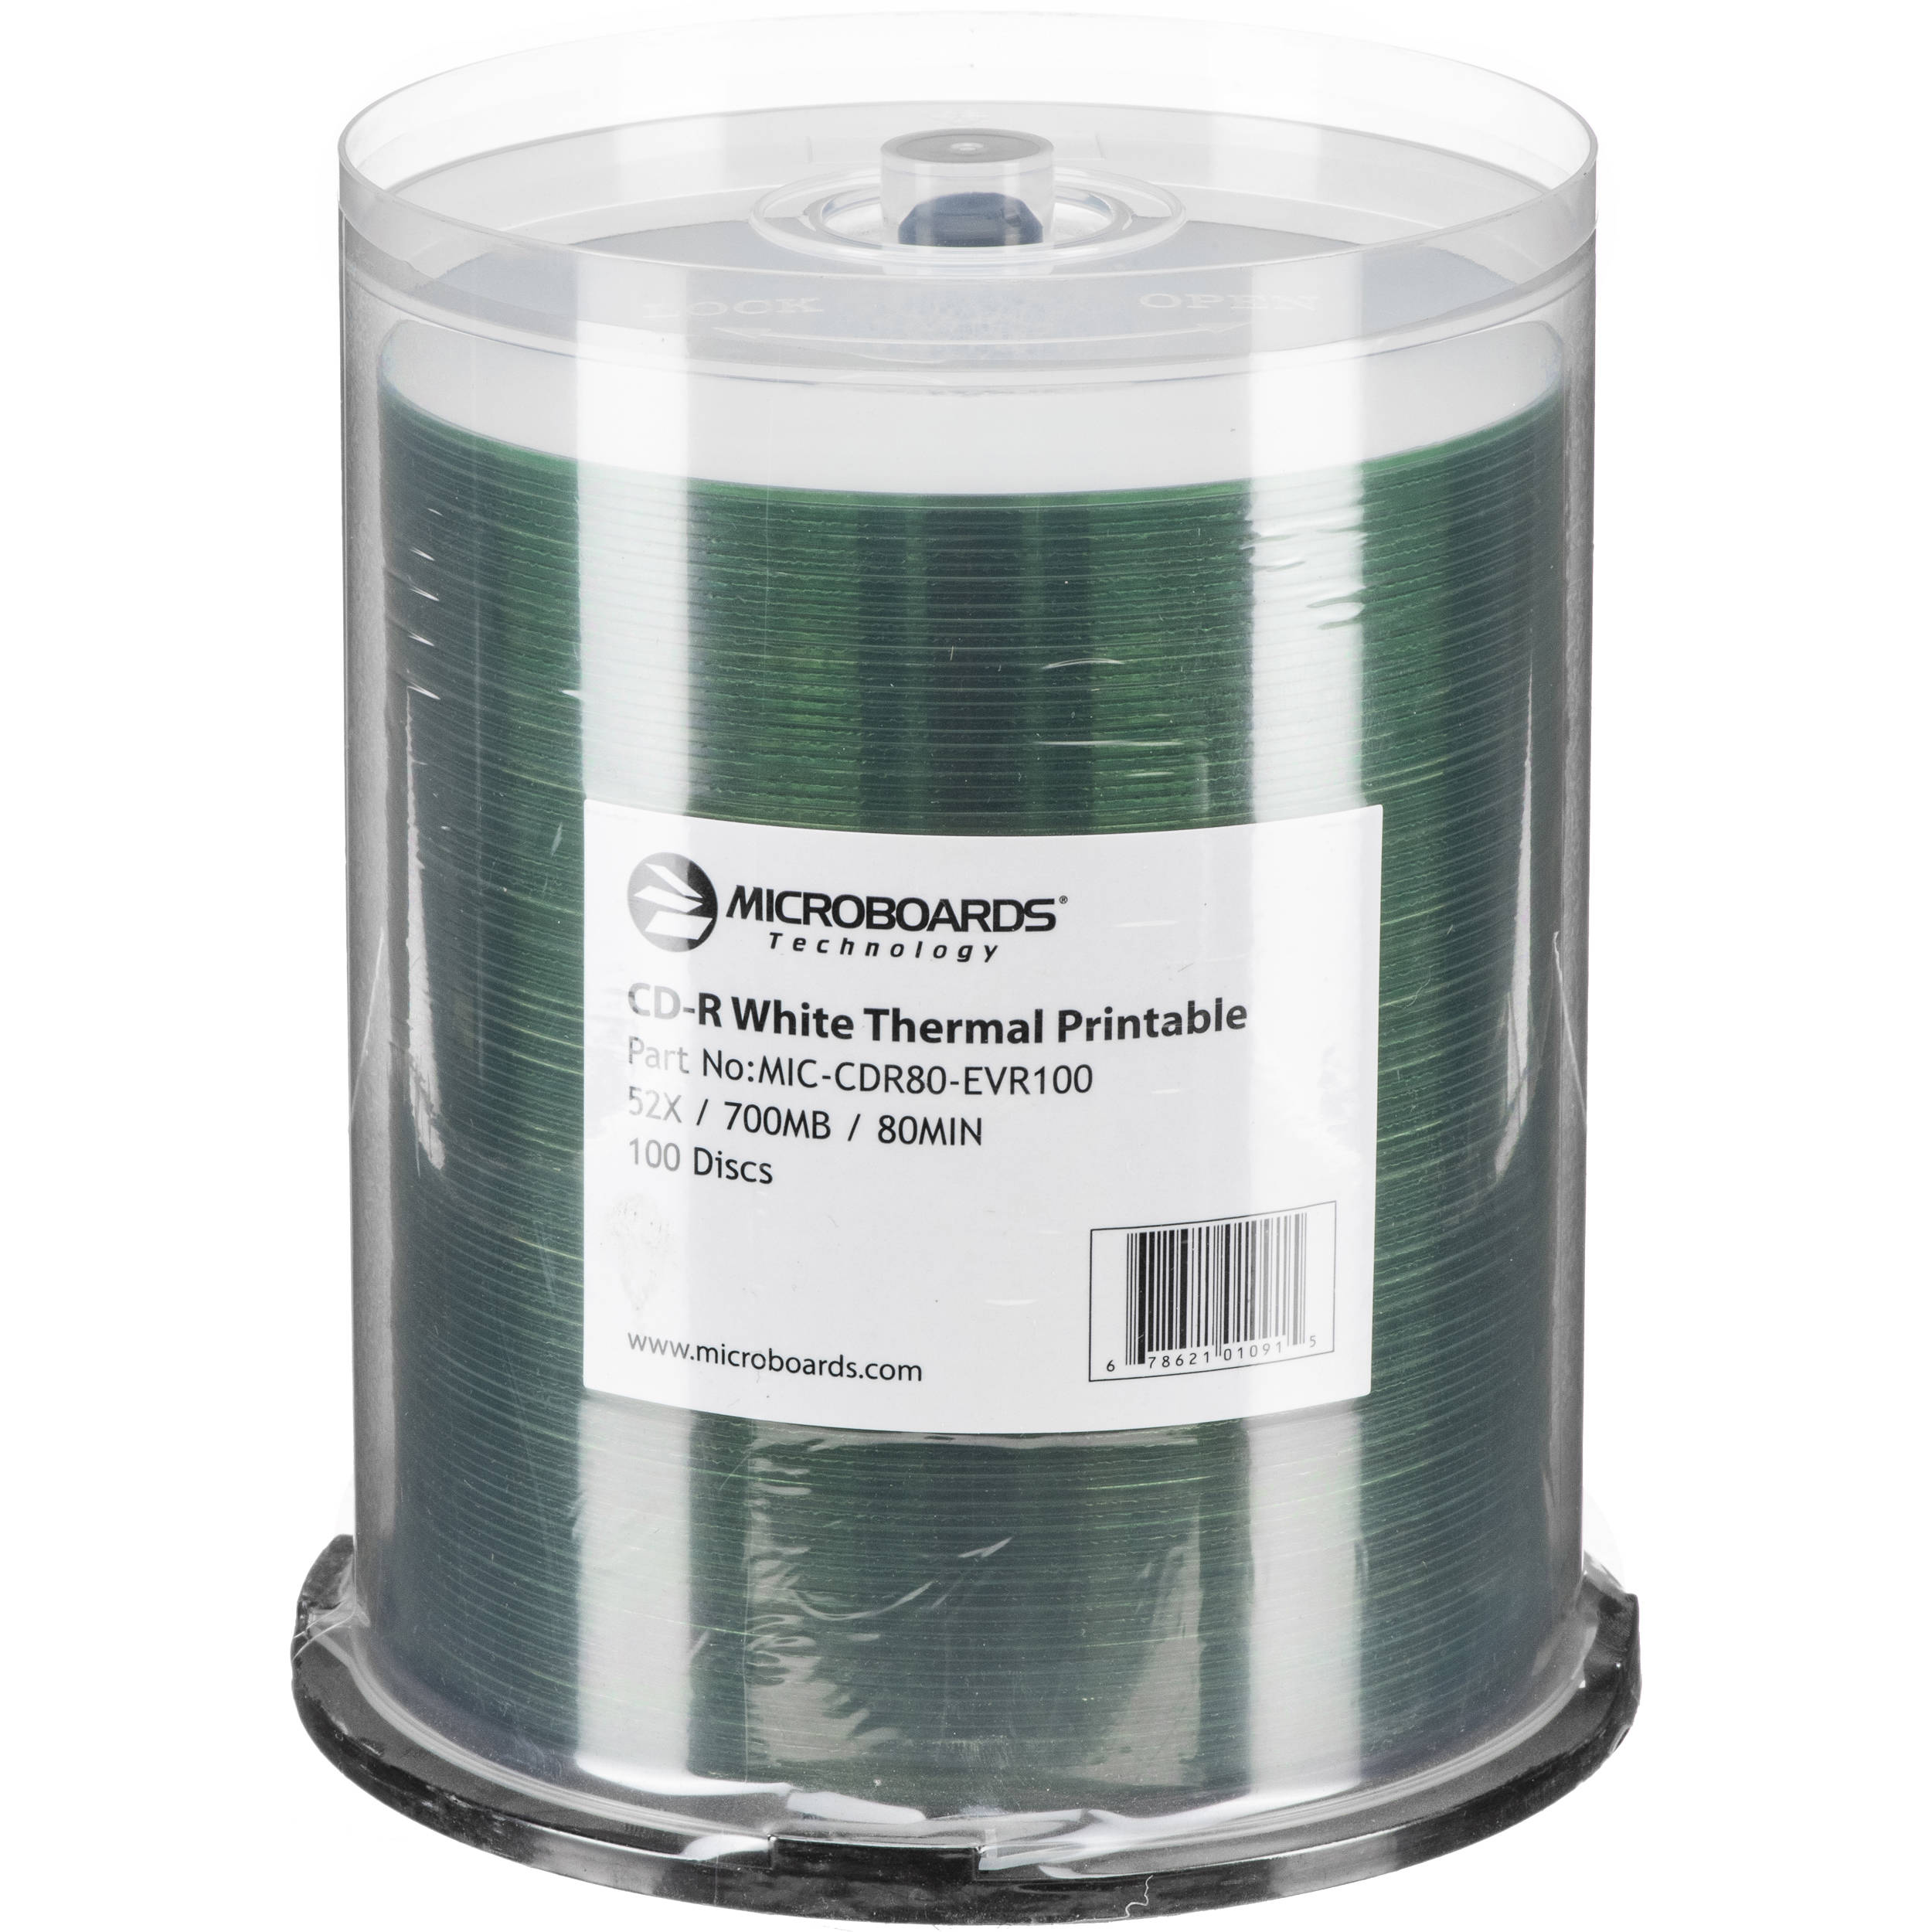 photo about Printable Cdr referred to as Microboards Printable 52x CD-R (100-Pack) For Rimage Everest Printer